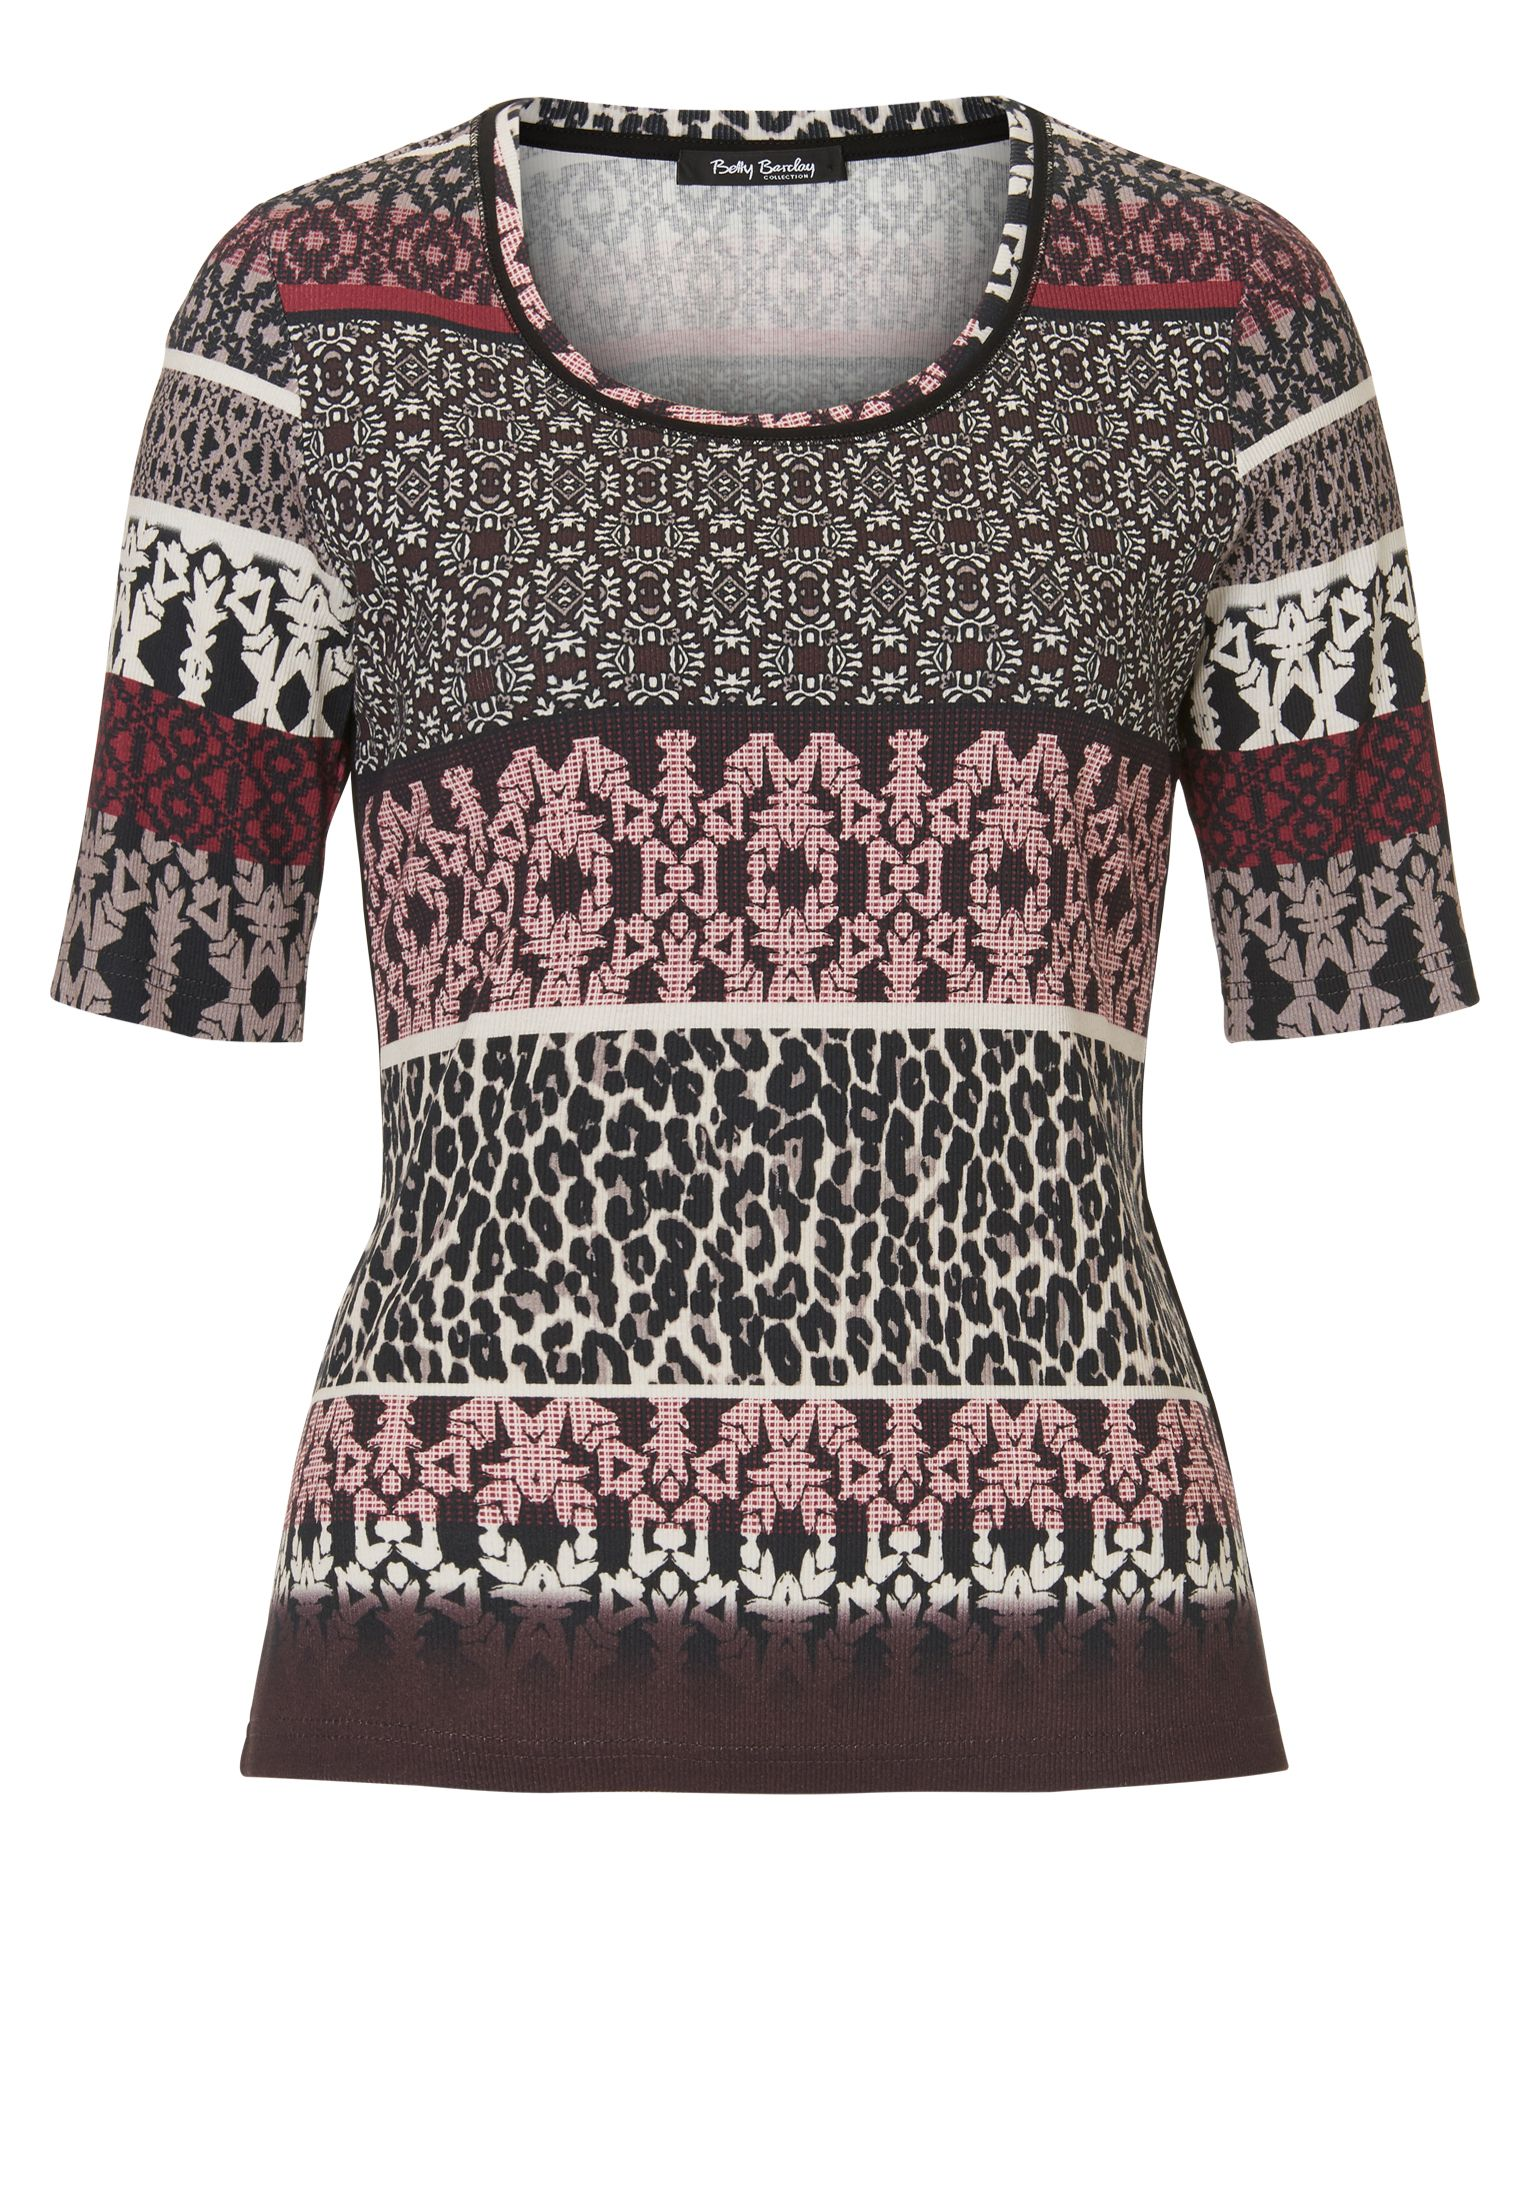 Betty Barclay Graphic and animal print top, Multi-Coloured